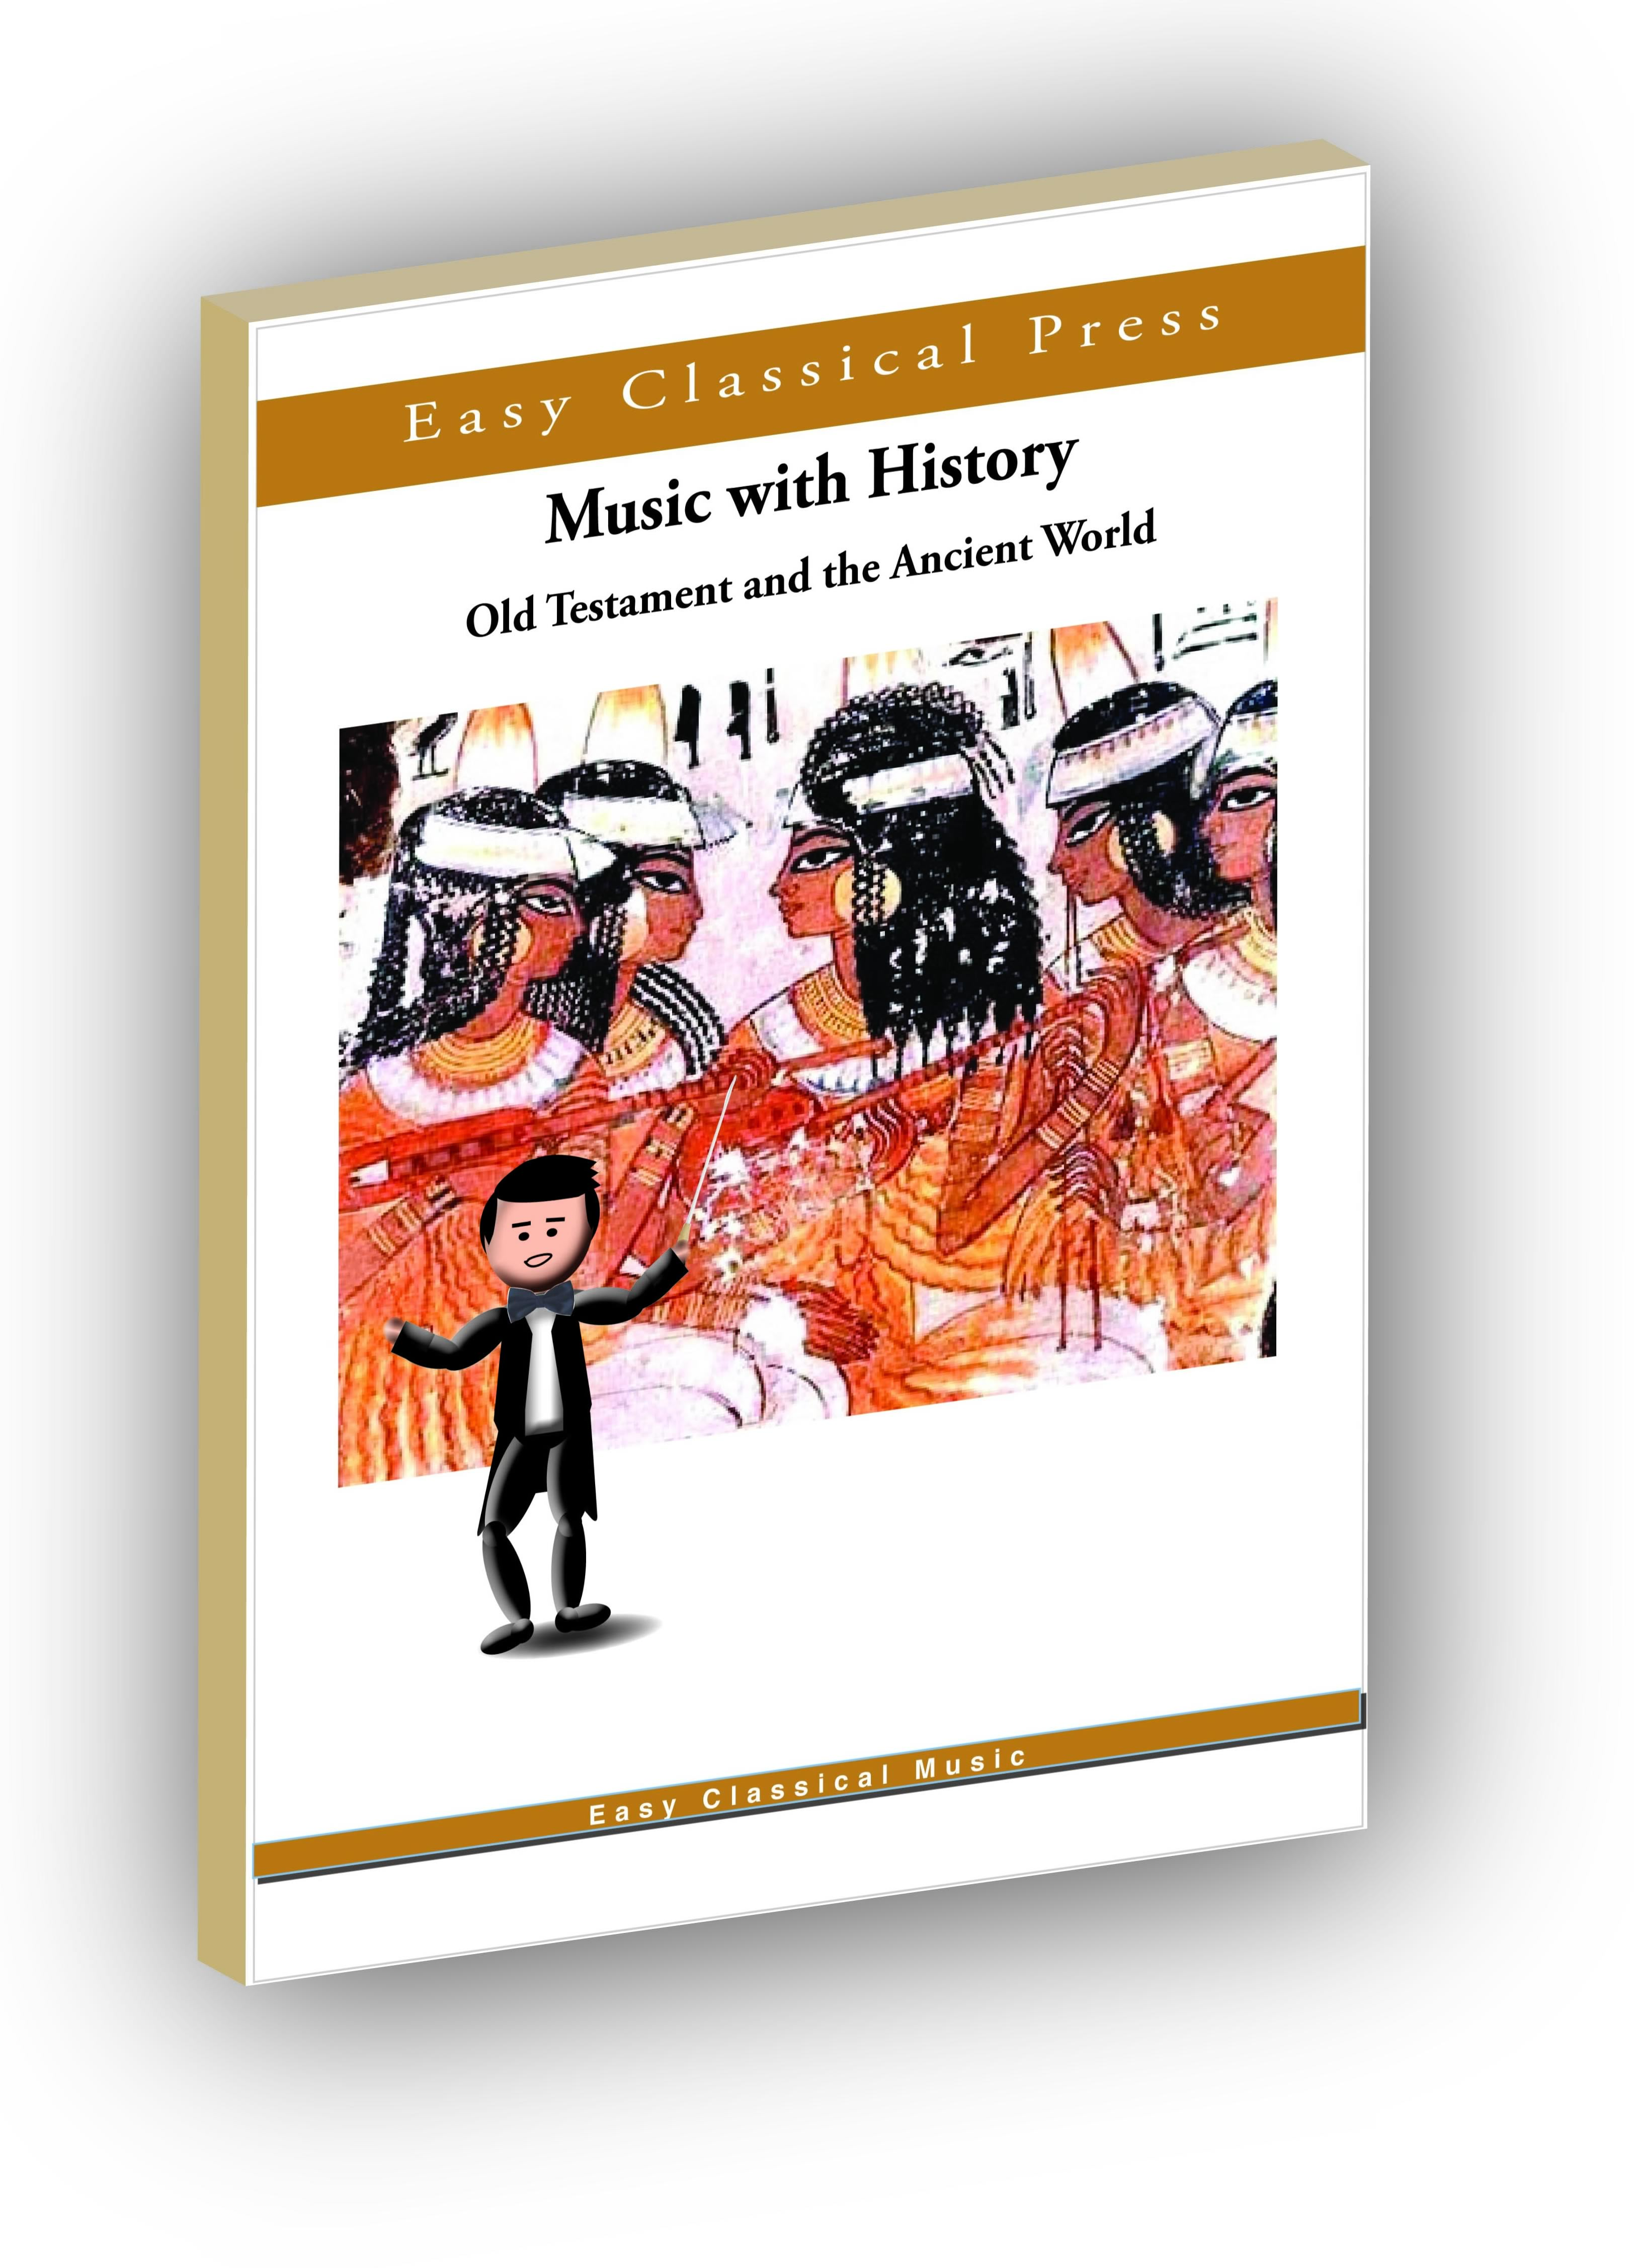 Music with History: Old Testament and the Ancient World